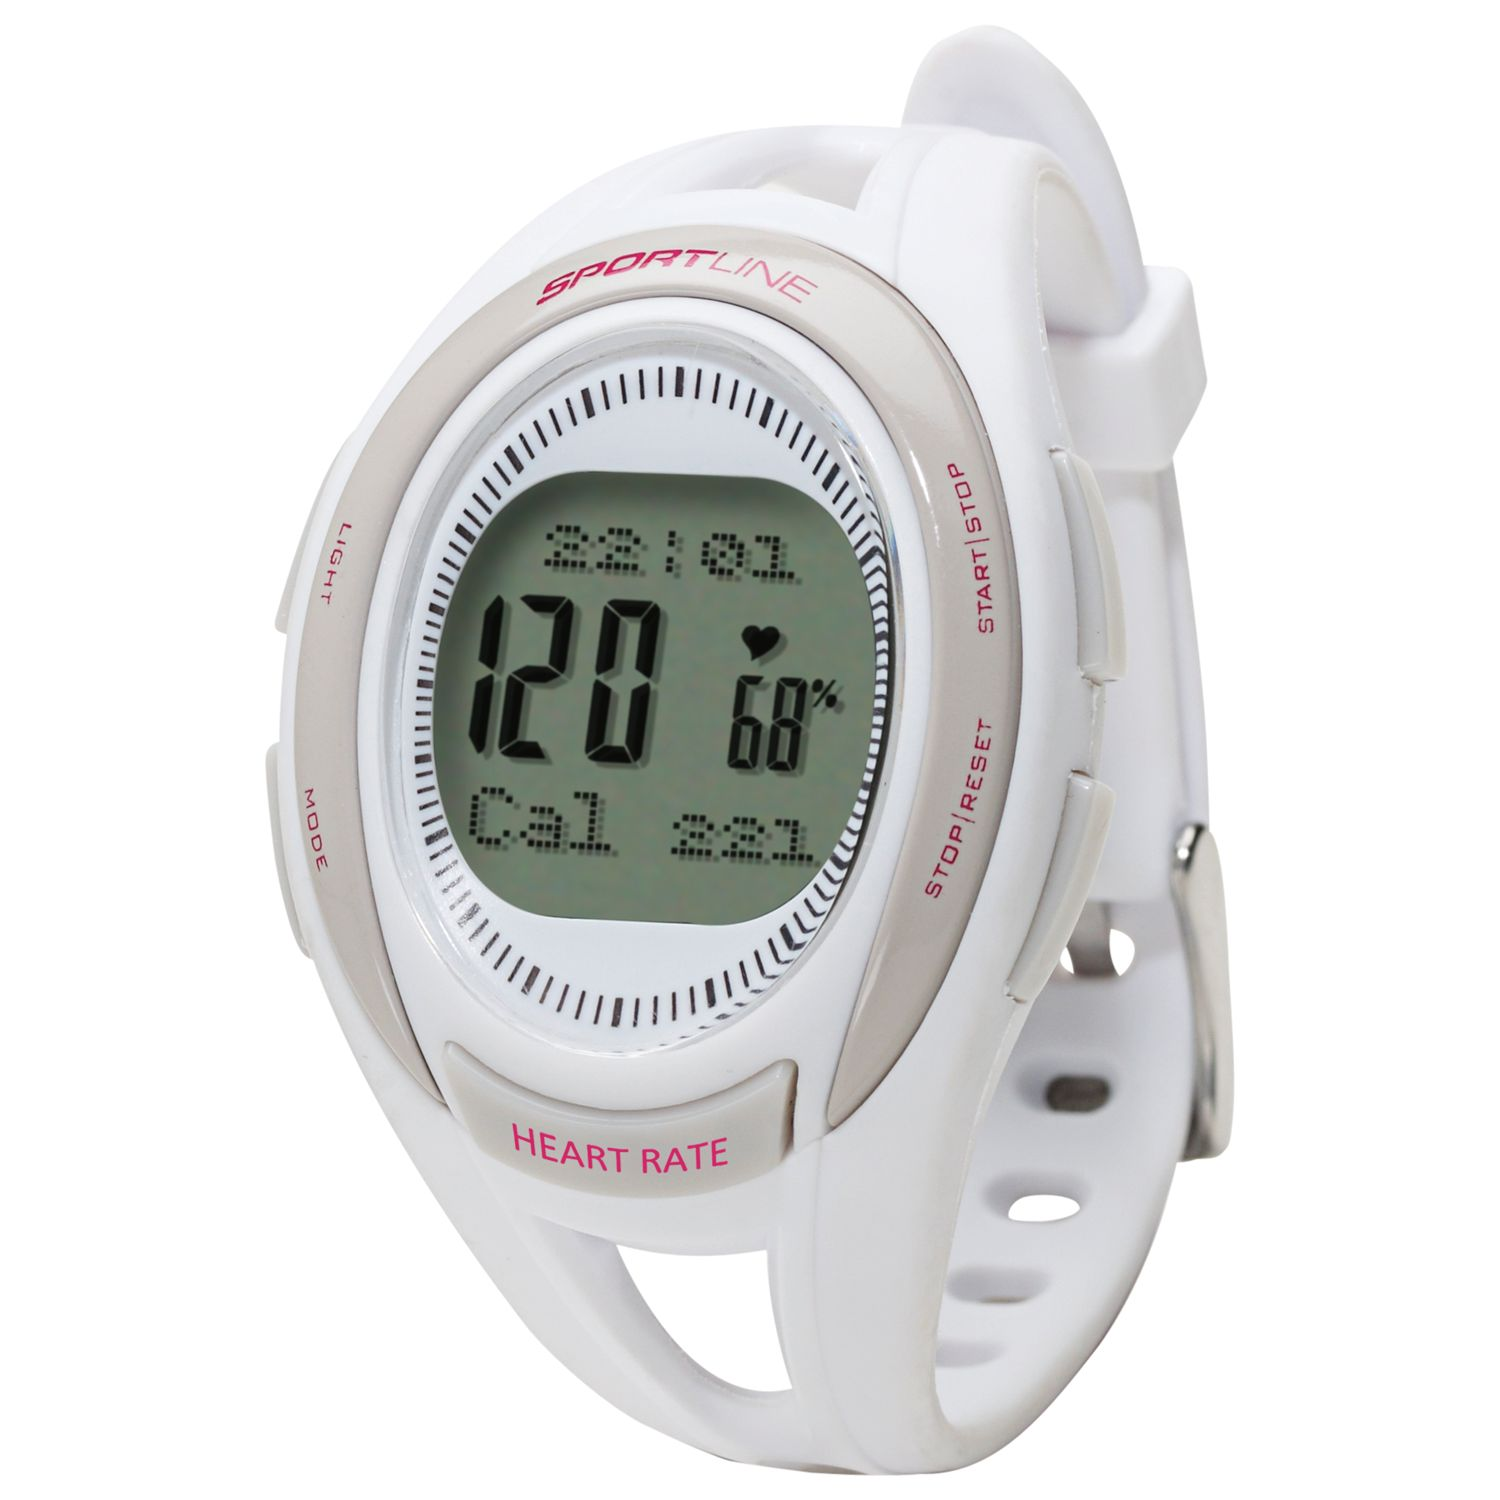 Sportline 660 Women's Cardio Heart Rate Watch, White